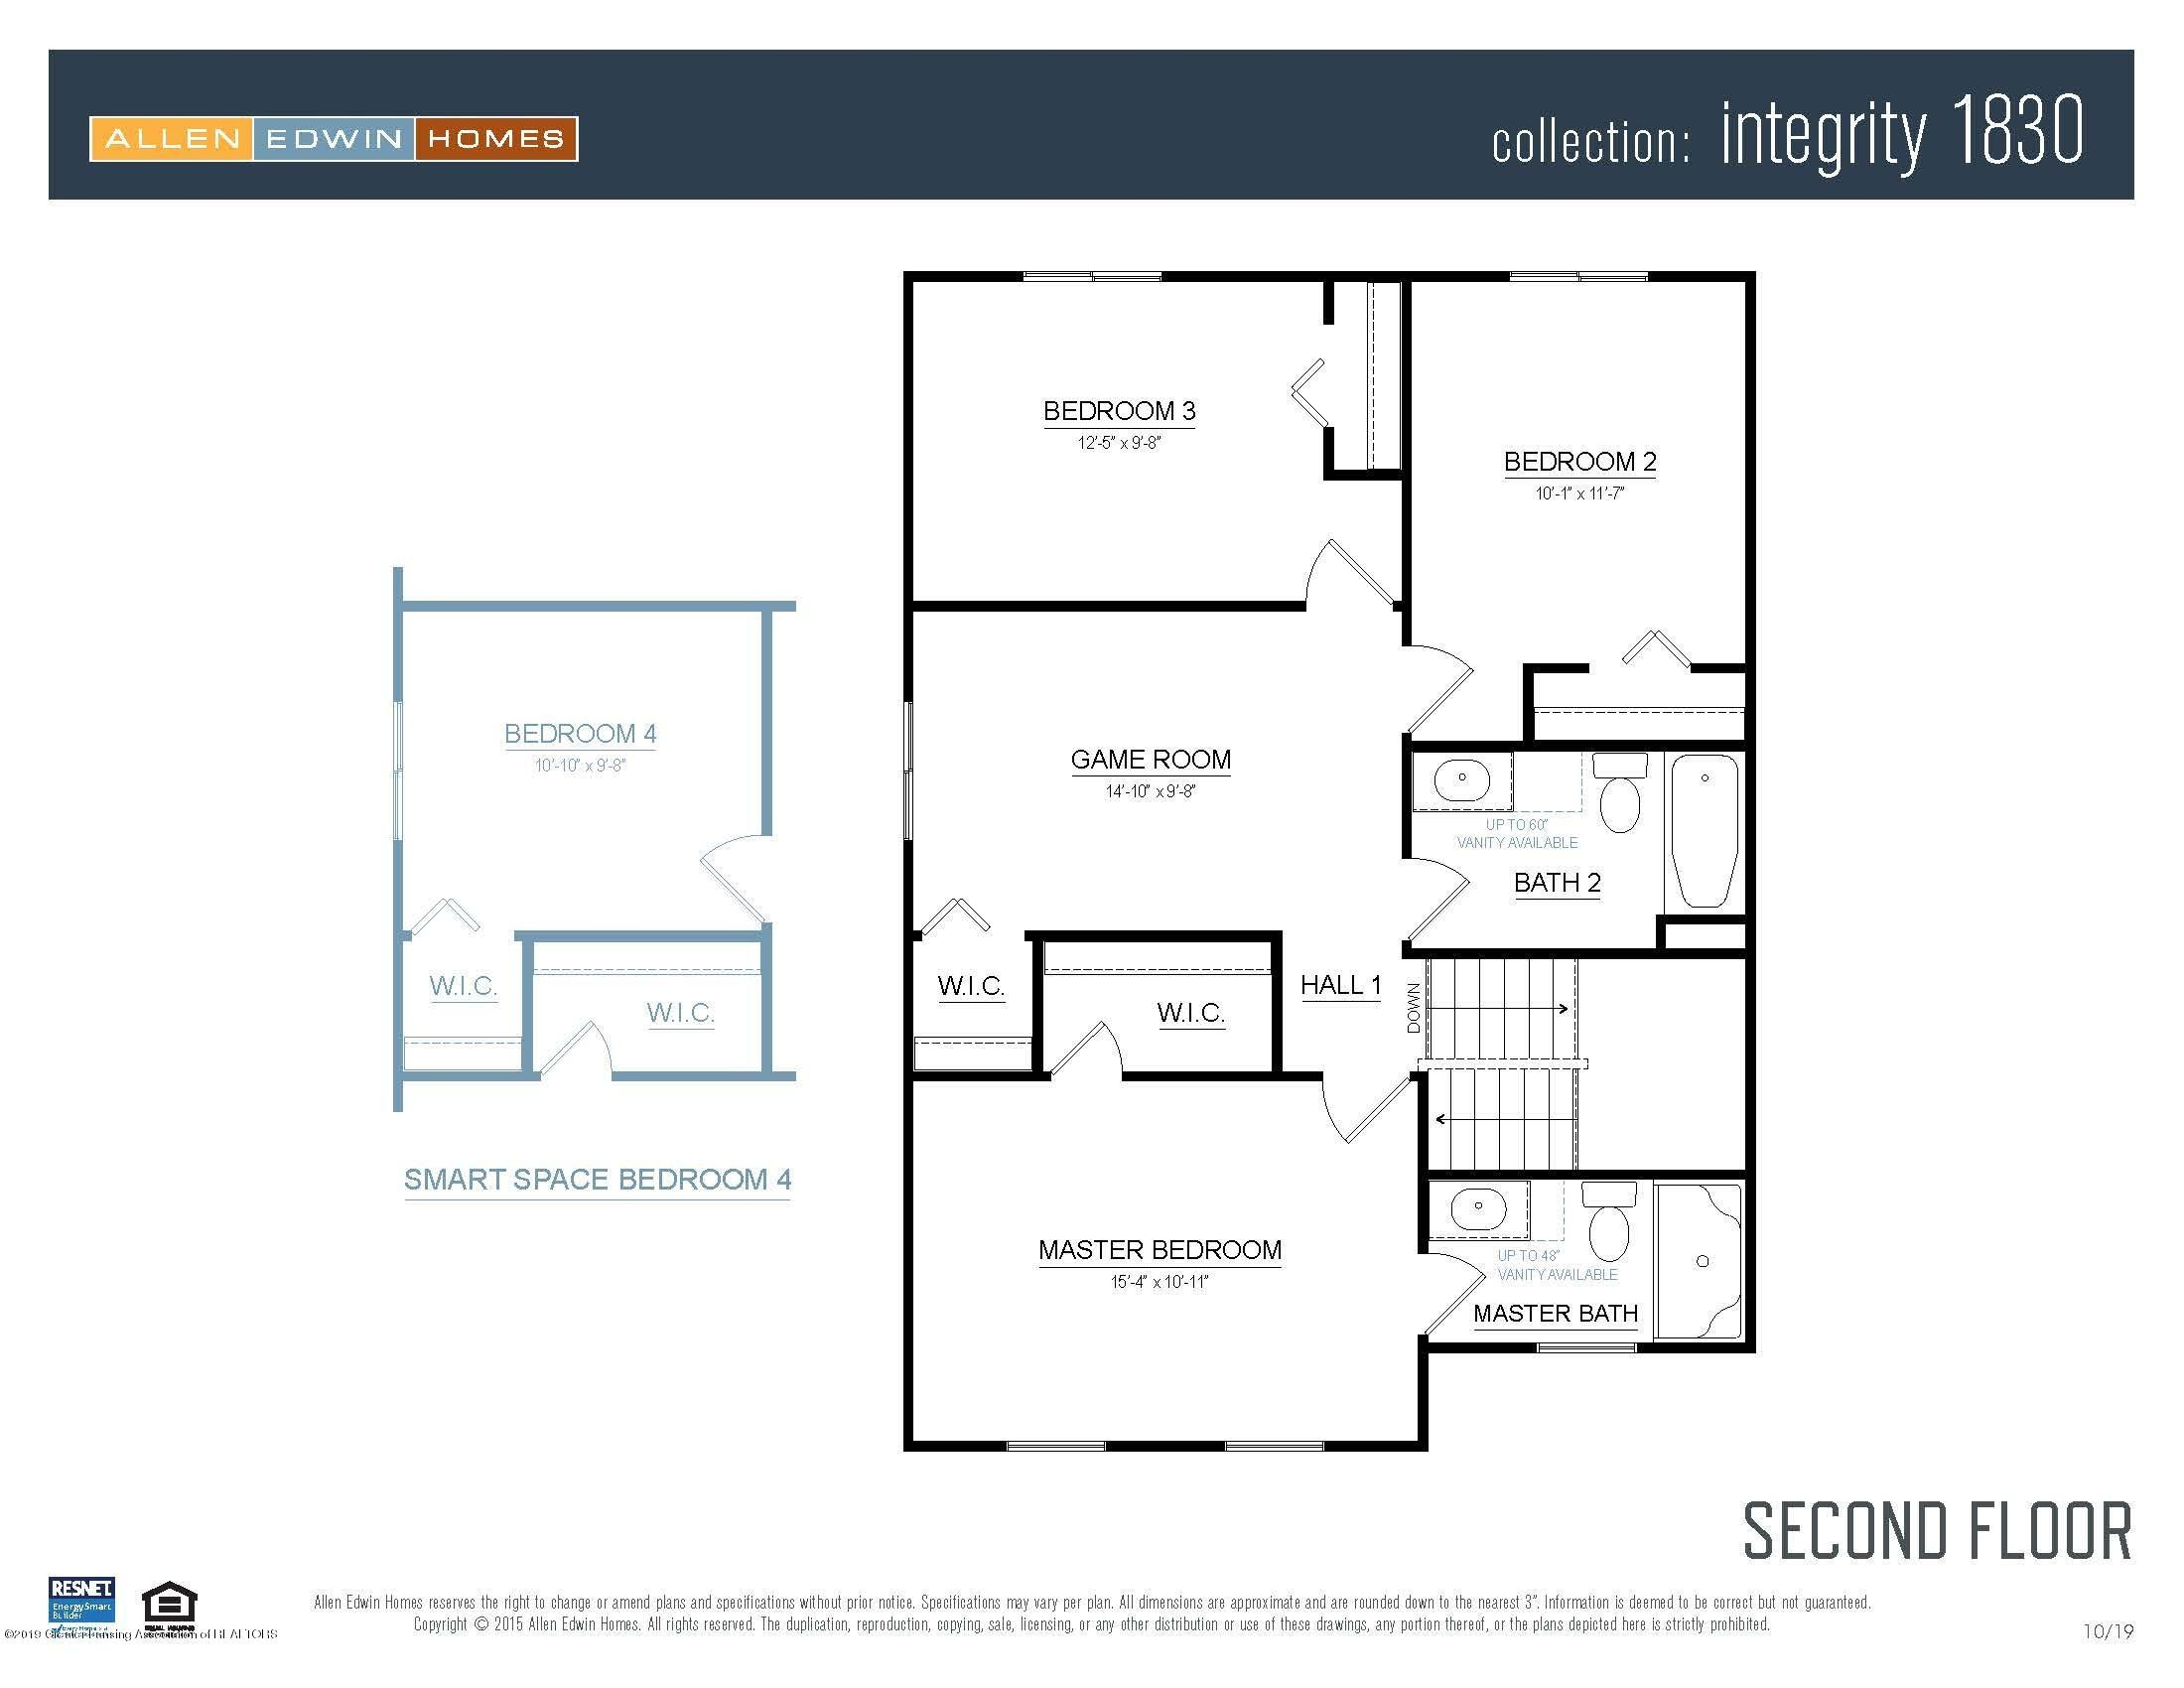 234 Noleigh - Integrity 1830 V8.1b Second Floor - 19